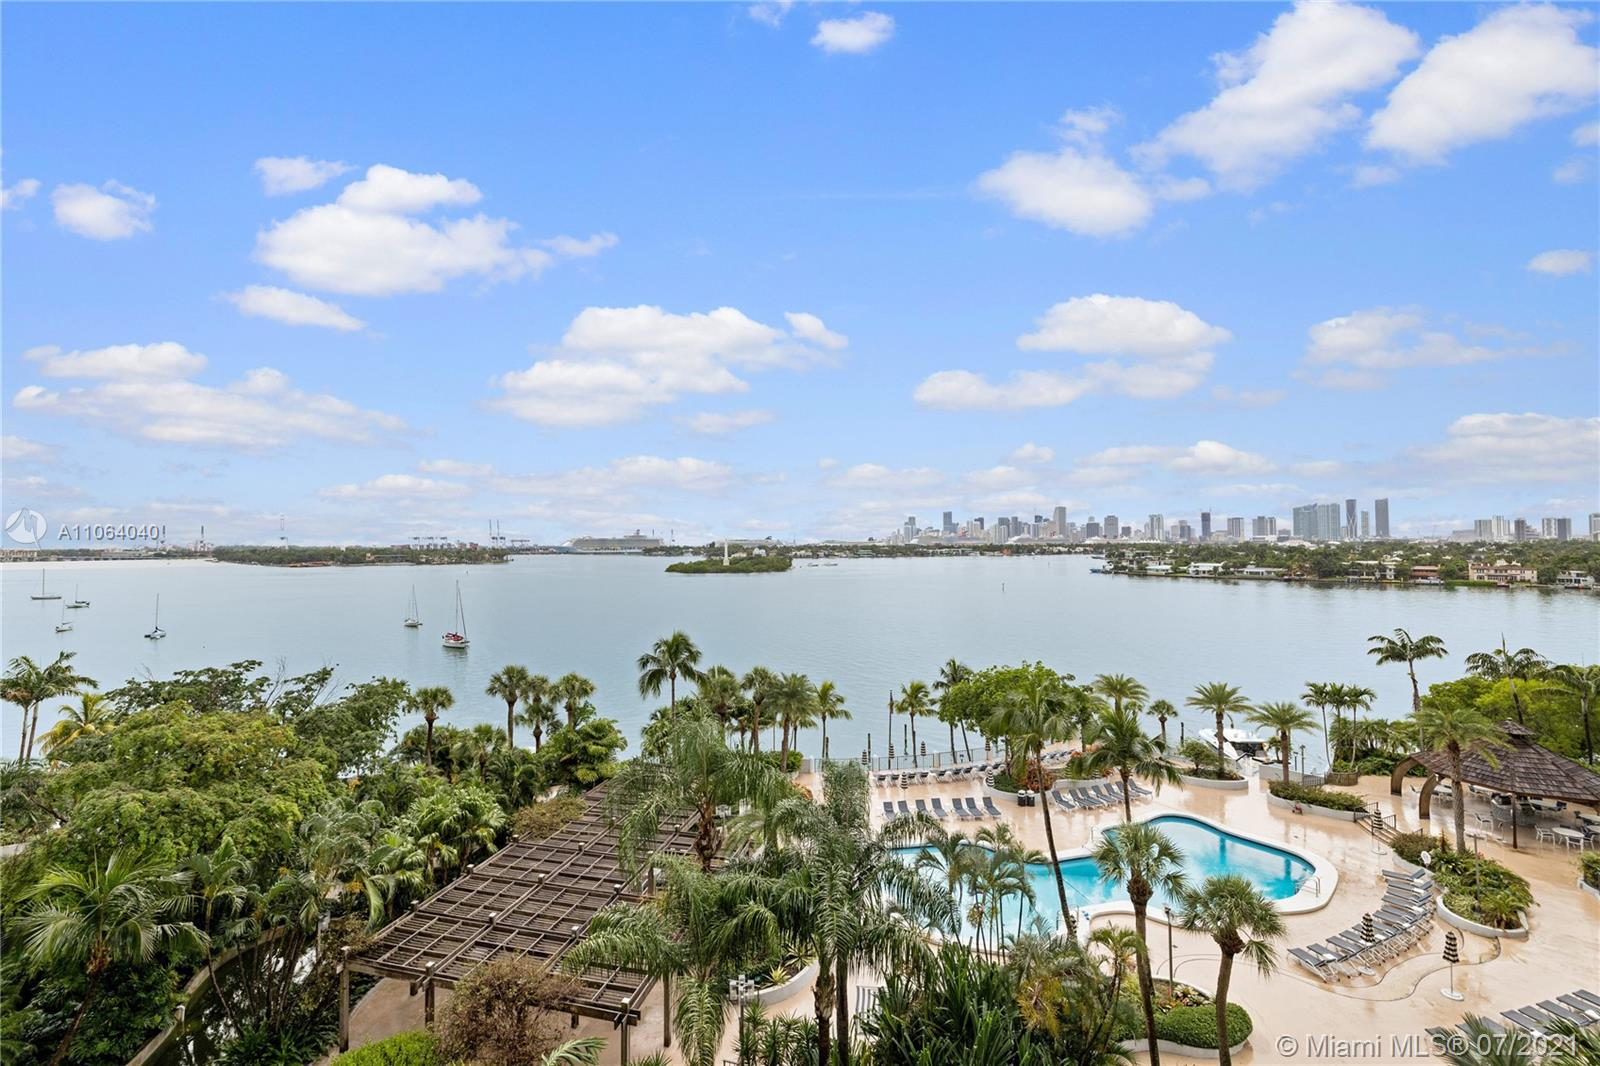 Enjoy stunning sunsets from this lovely 2 bedroom/2 bathroom unit - 100% completely updated - including new impact windows. New open kitchen with granite counters. Full sized washer/dryer w/ laundry room, tons of storage. Full service established building with LUX amenities: security, concierge, tennis, heated resort-like pool & 3 Jacuzzi overlooking the bay & downtown, valet, gym, BBQ area, party room, boat slips. Children's park + 2 dog parks in front of building. Walking distance to The Standard, Sunset Harbor, Linciln Road, shops and trendy restaurants.